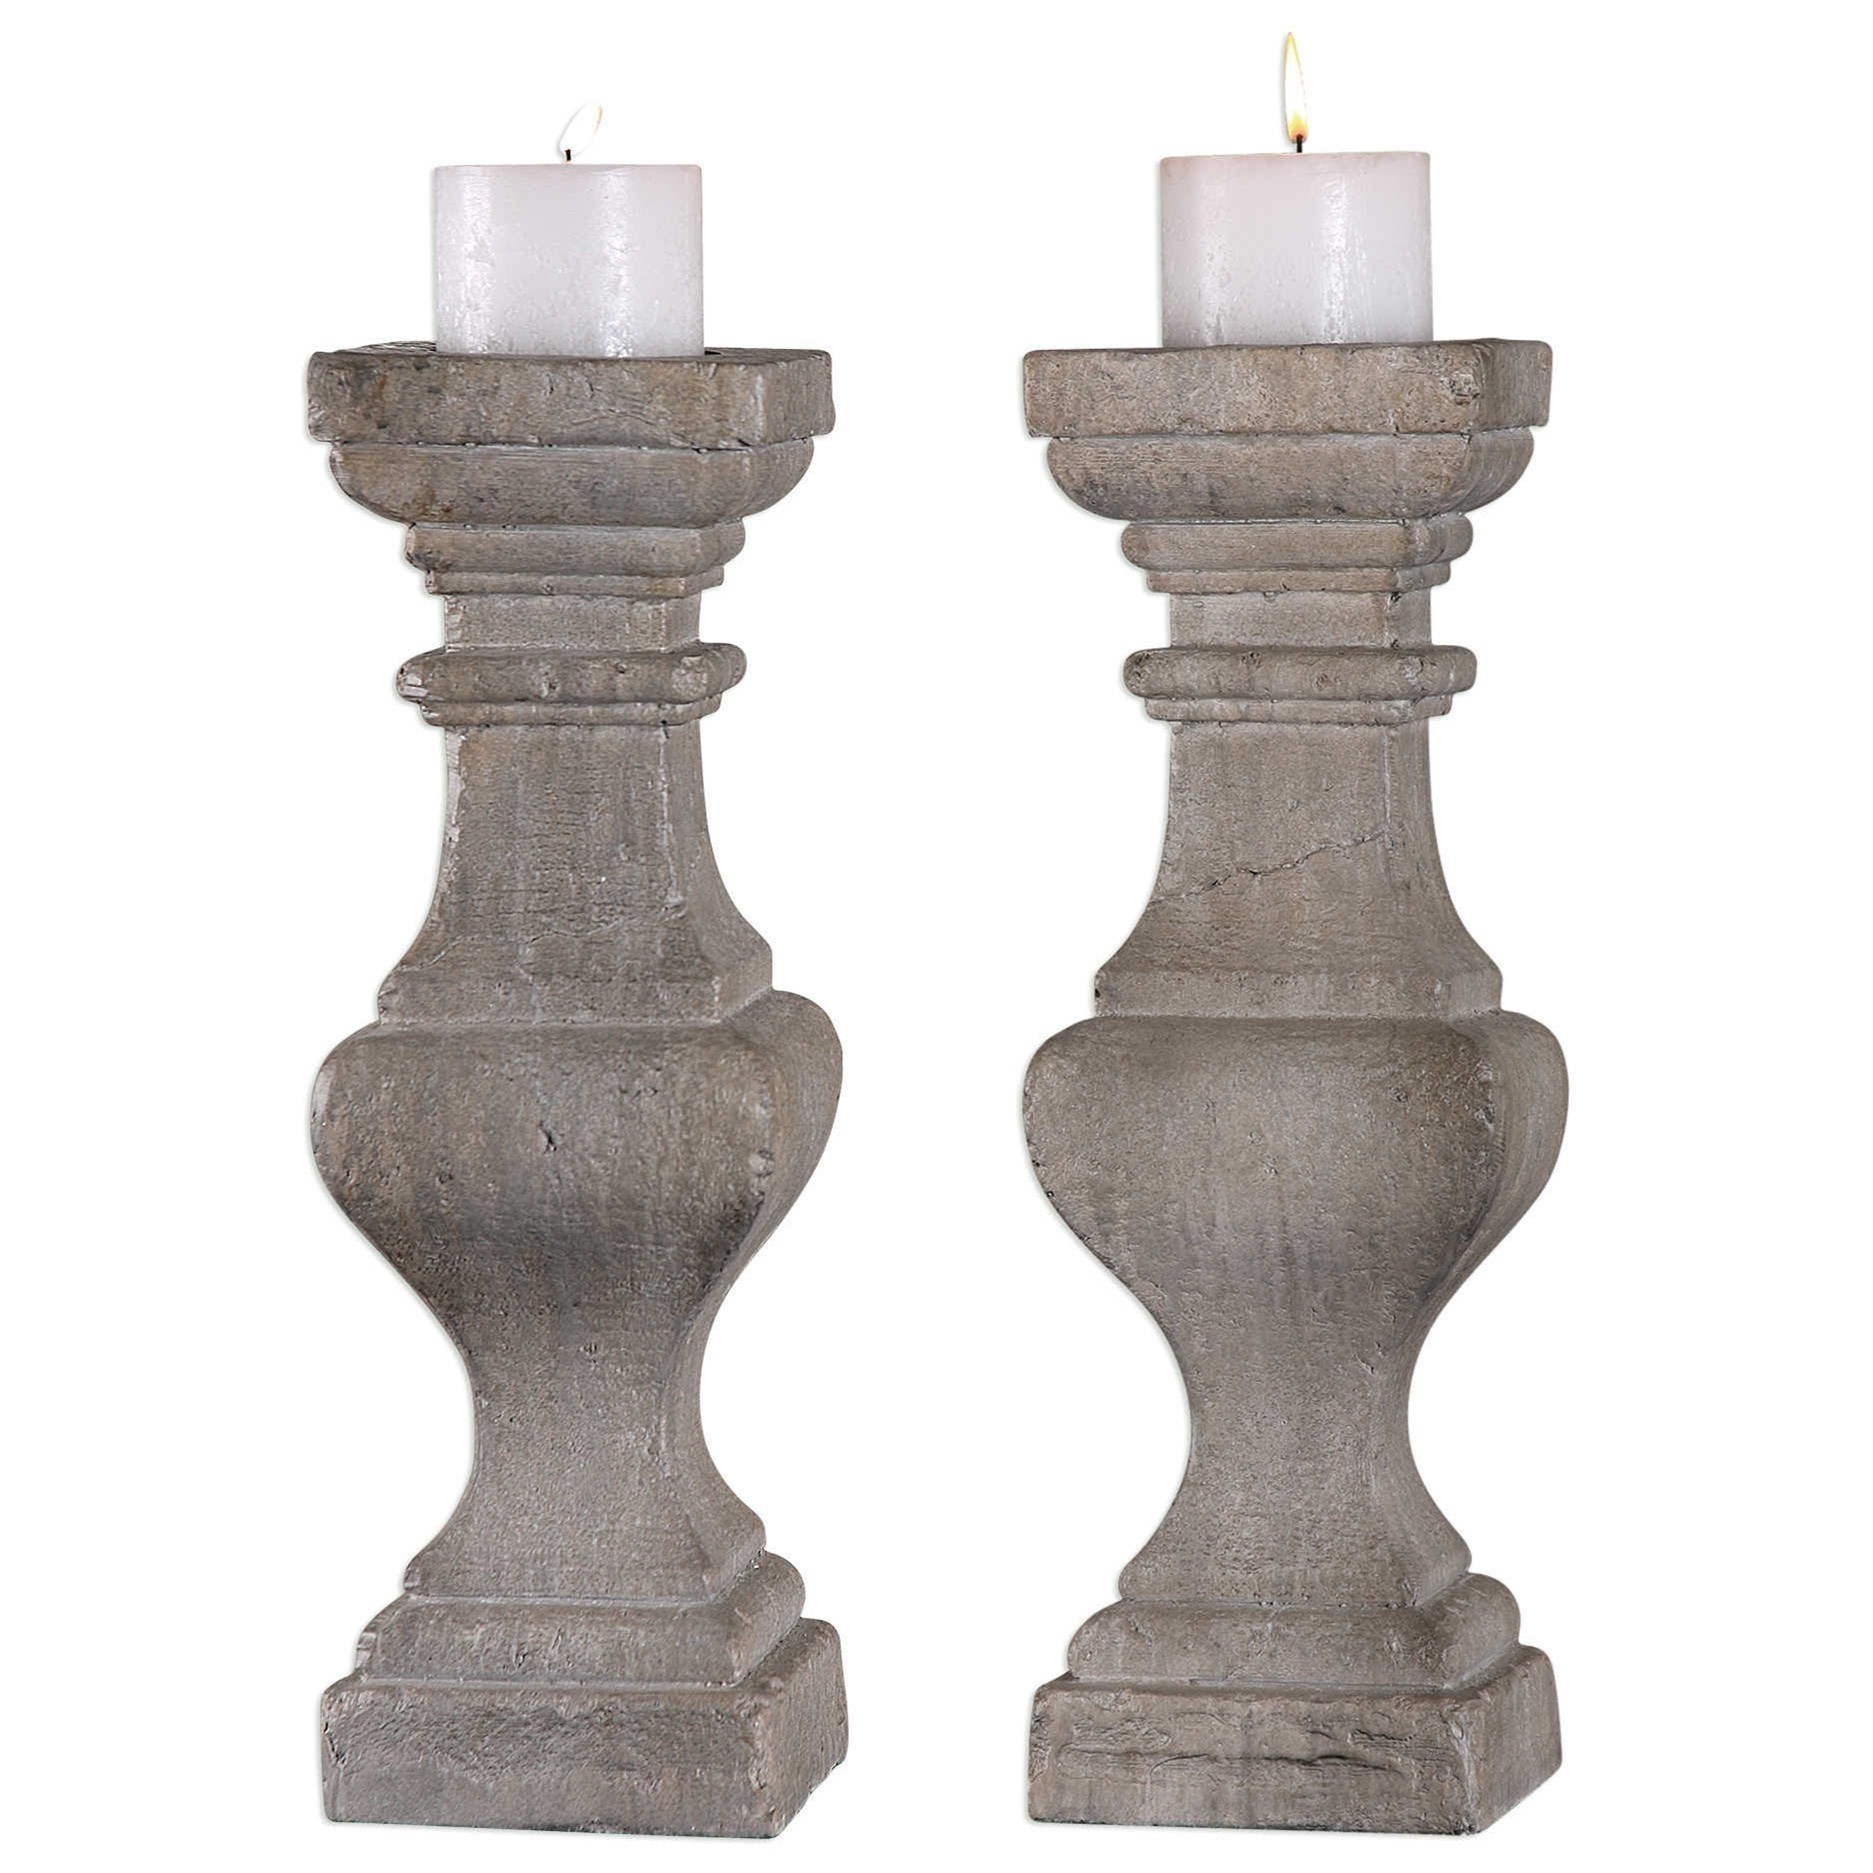 Uttermost Accessories Corin Stone Ivory Candleholders (Set of 2) - Item Number: 18705